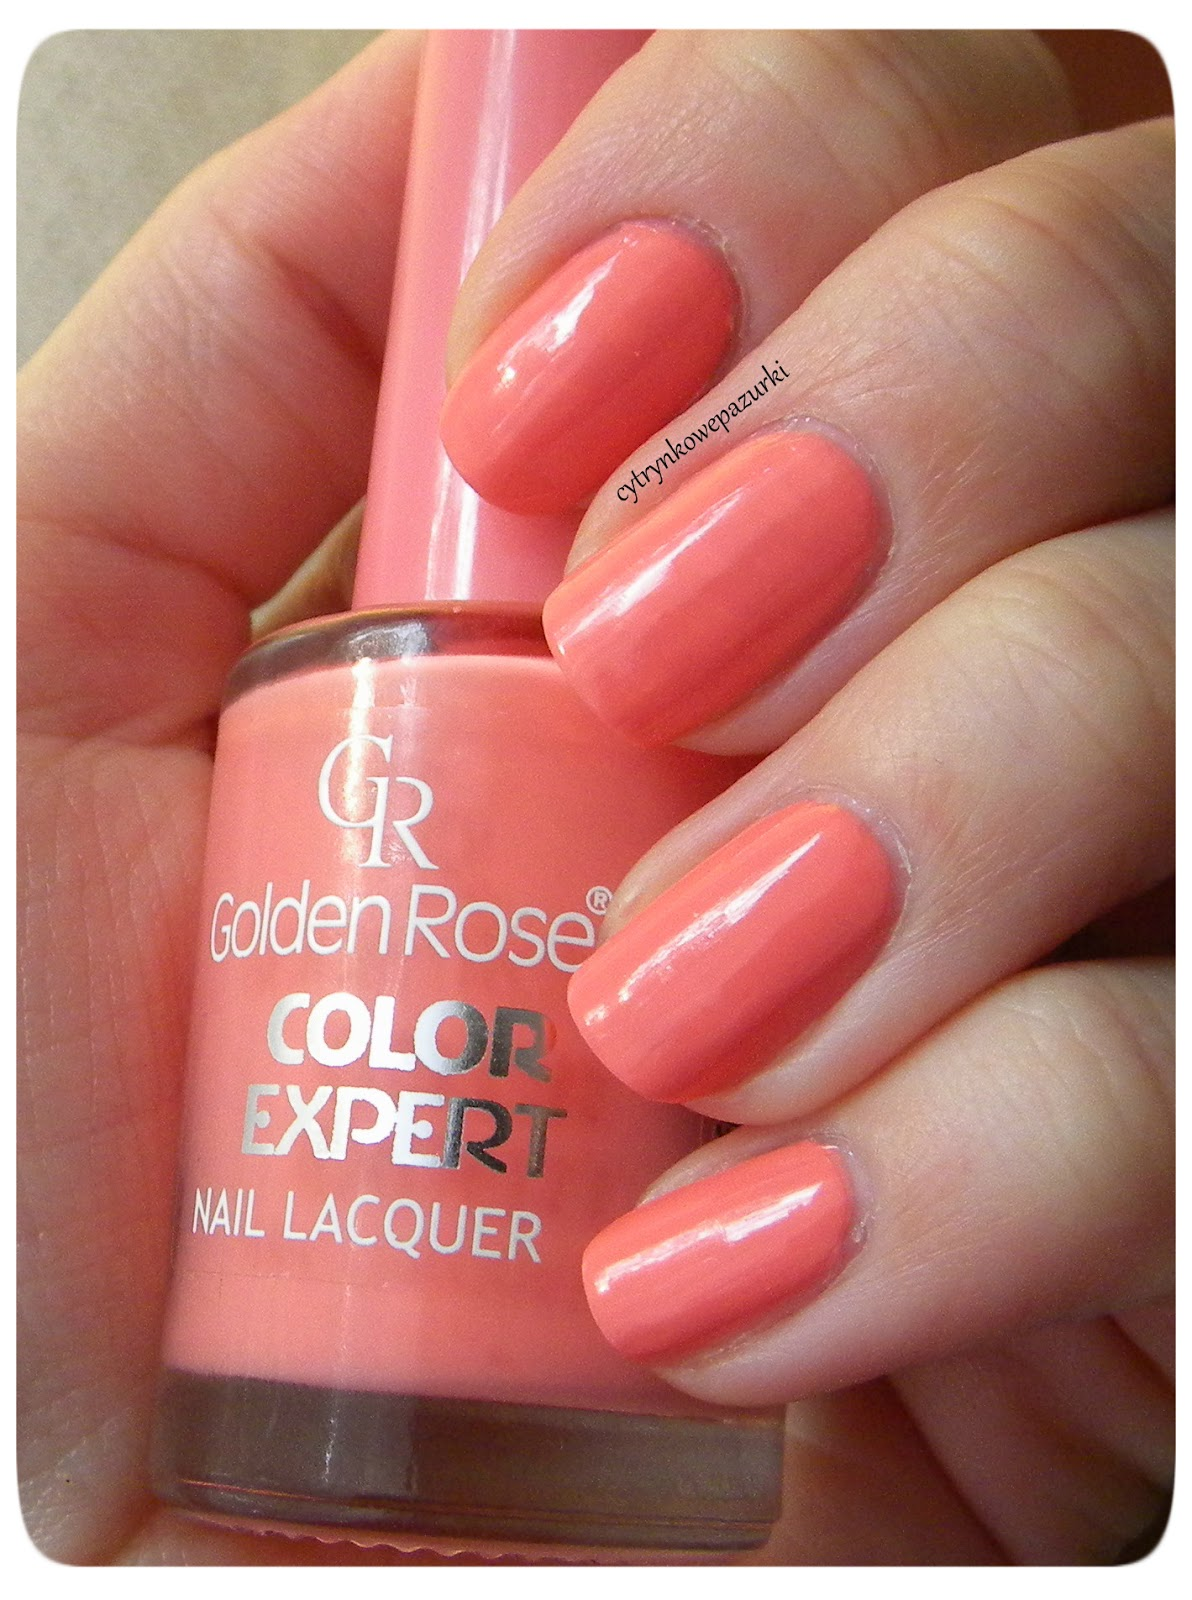 Golden Rose Color Expert 22 i Life 09